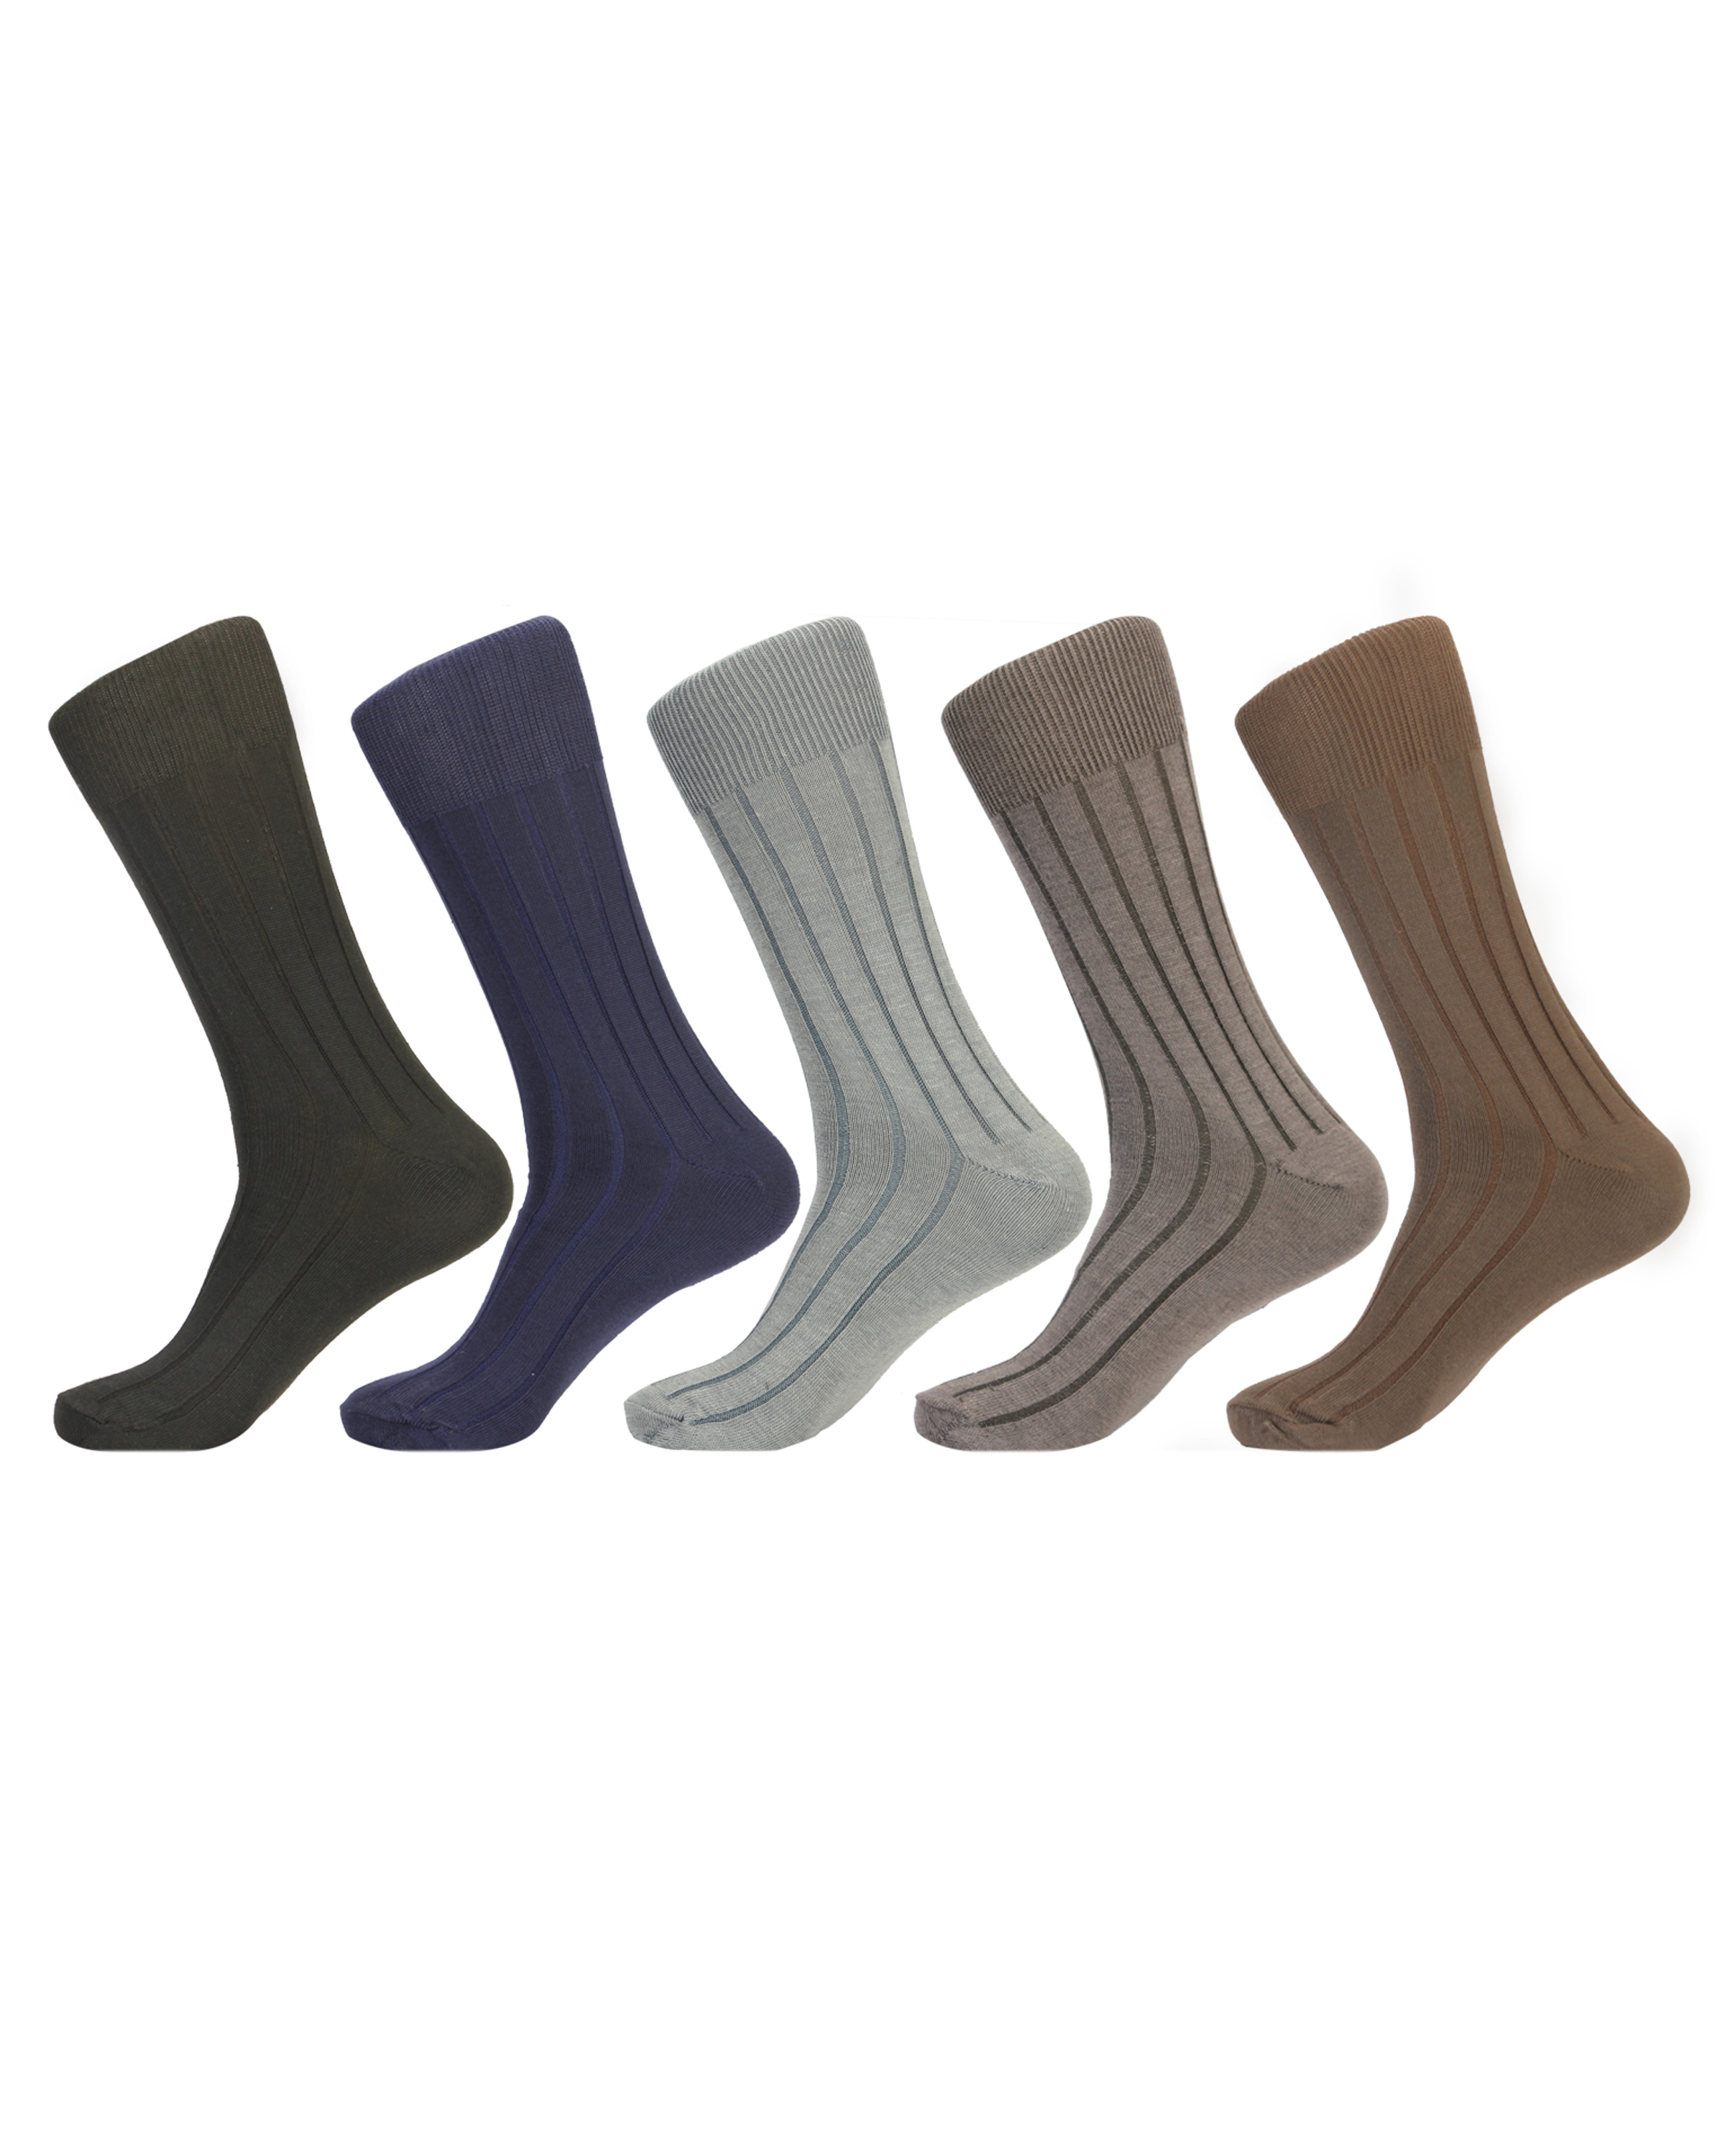 Don All Round Ribb Officers Choice Calf Sock